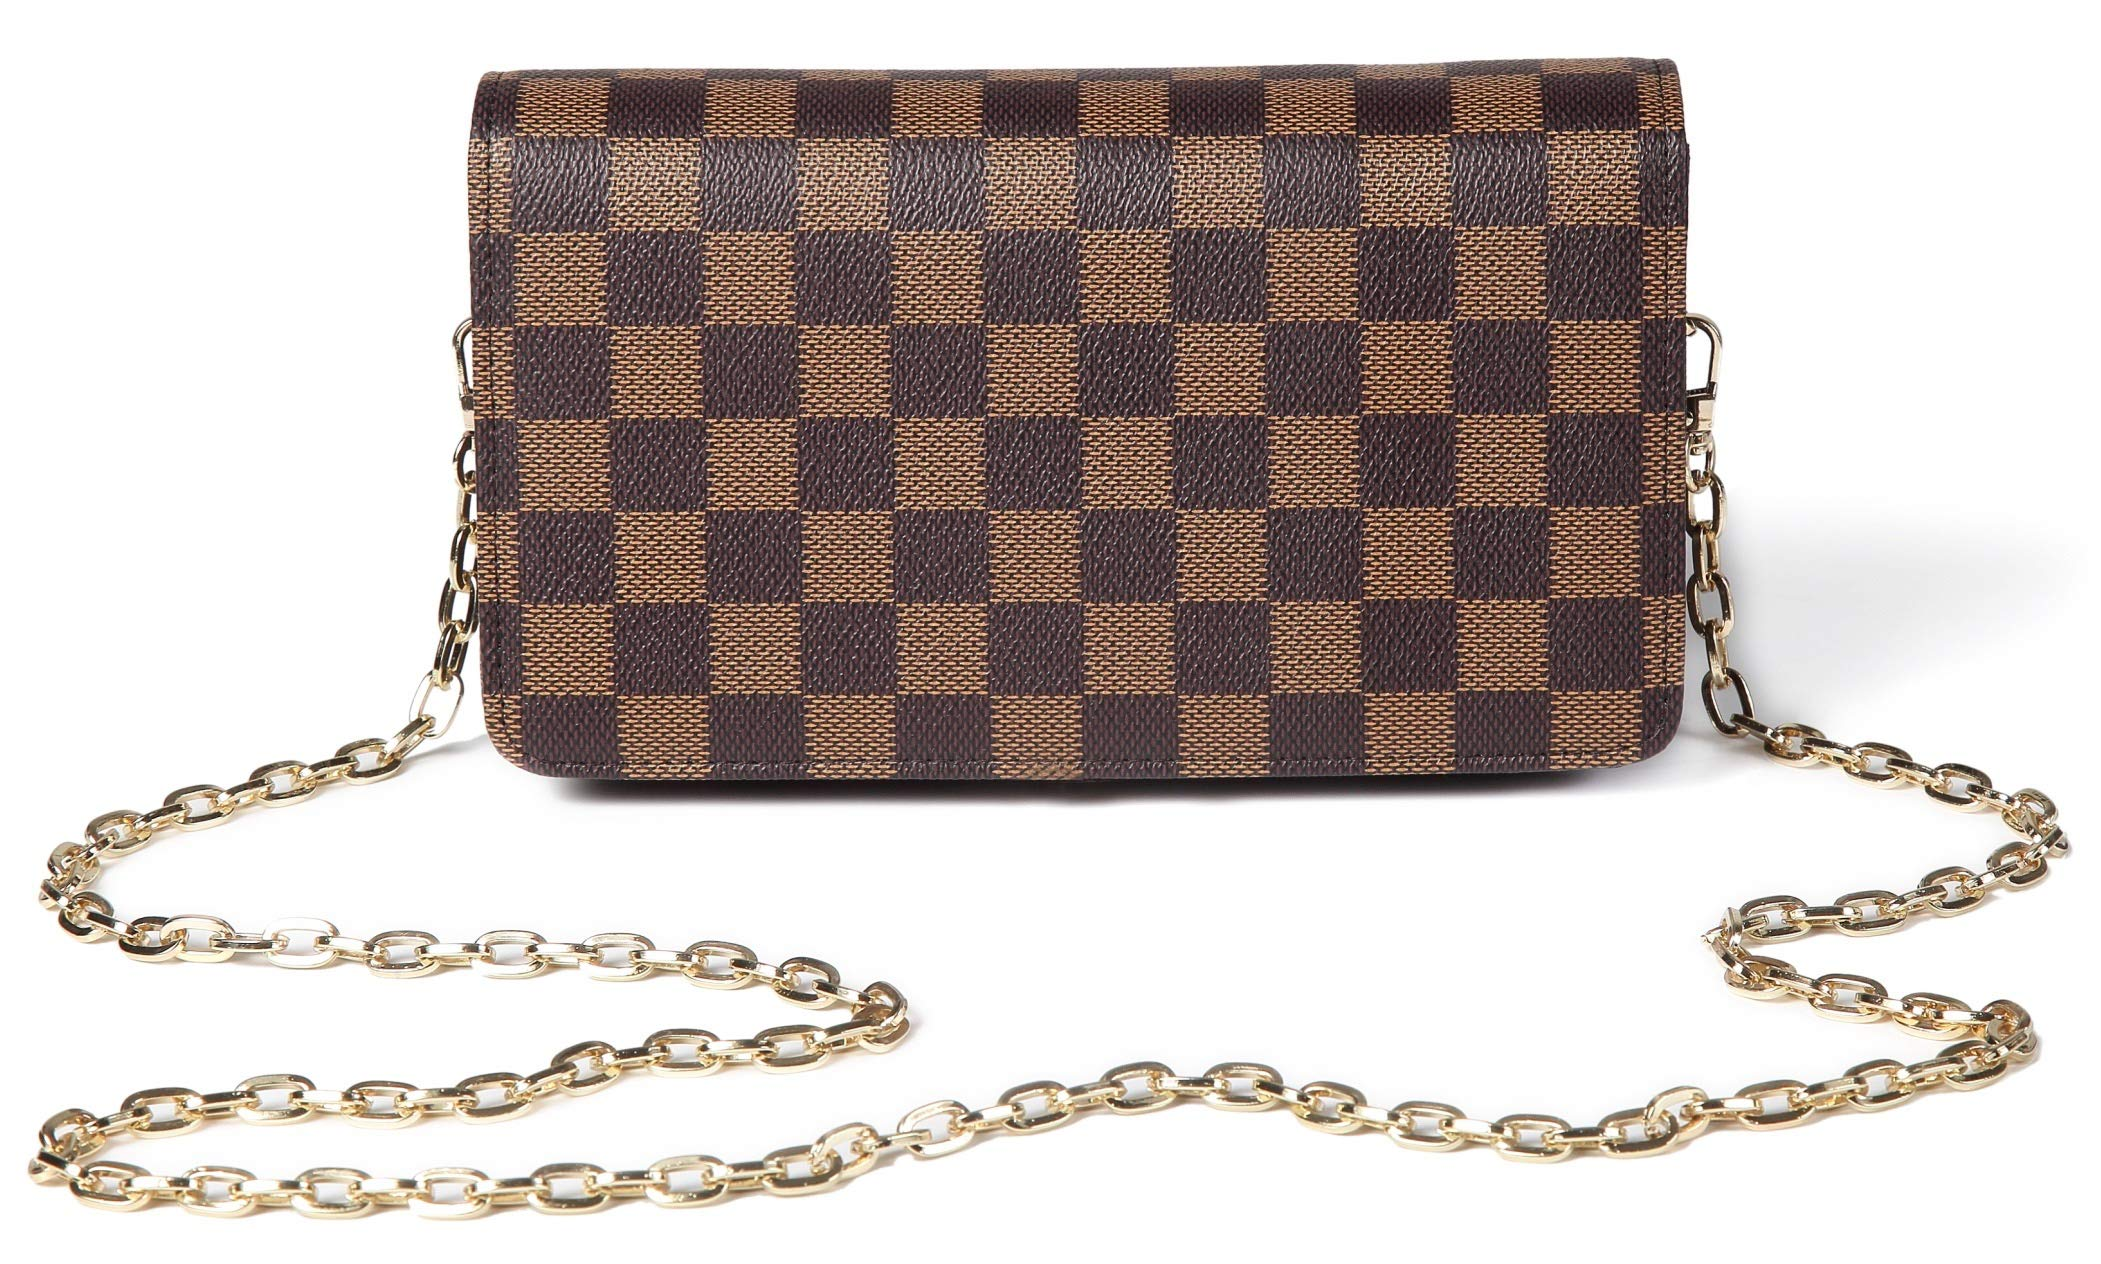 Daisy Rose Checkered Cross body bag - RFID Blocking with Credit Card slots clutch -PU Vegan Leather (BROWN) by Daisy Rose